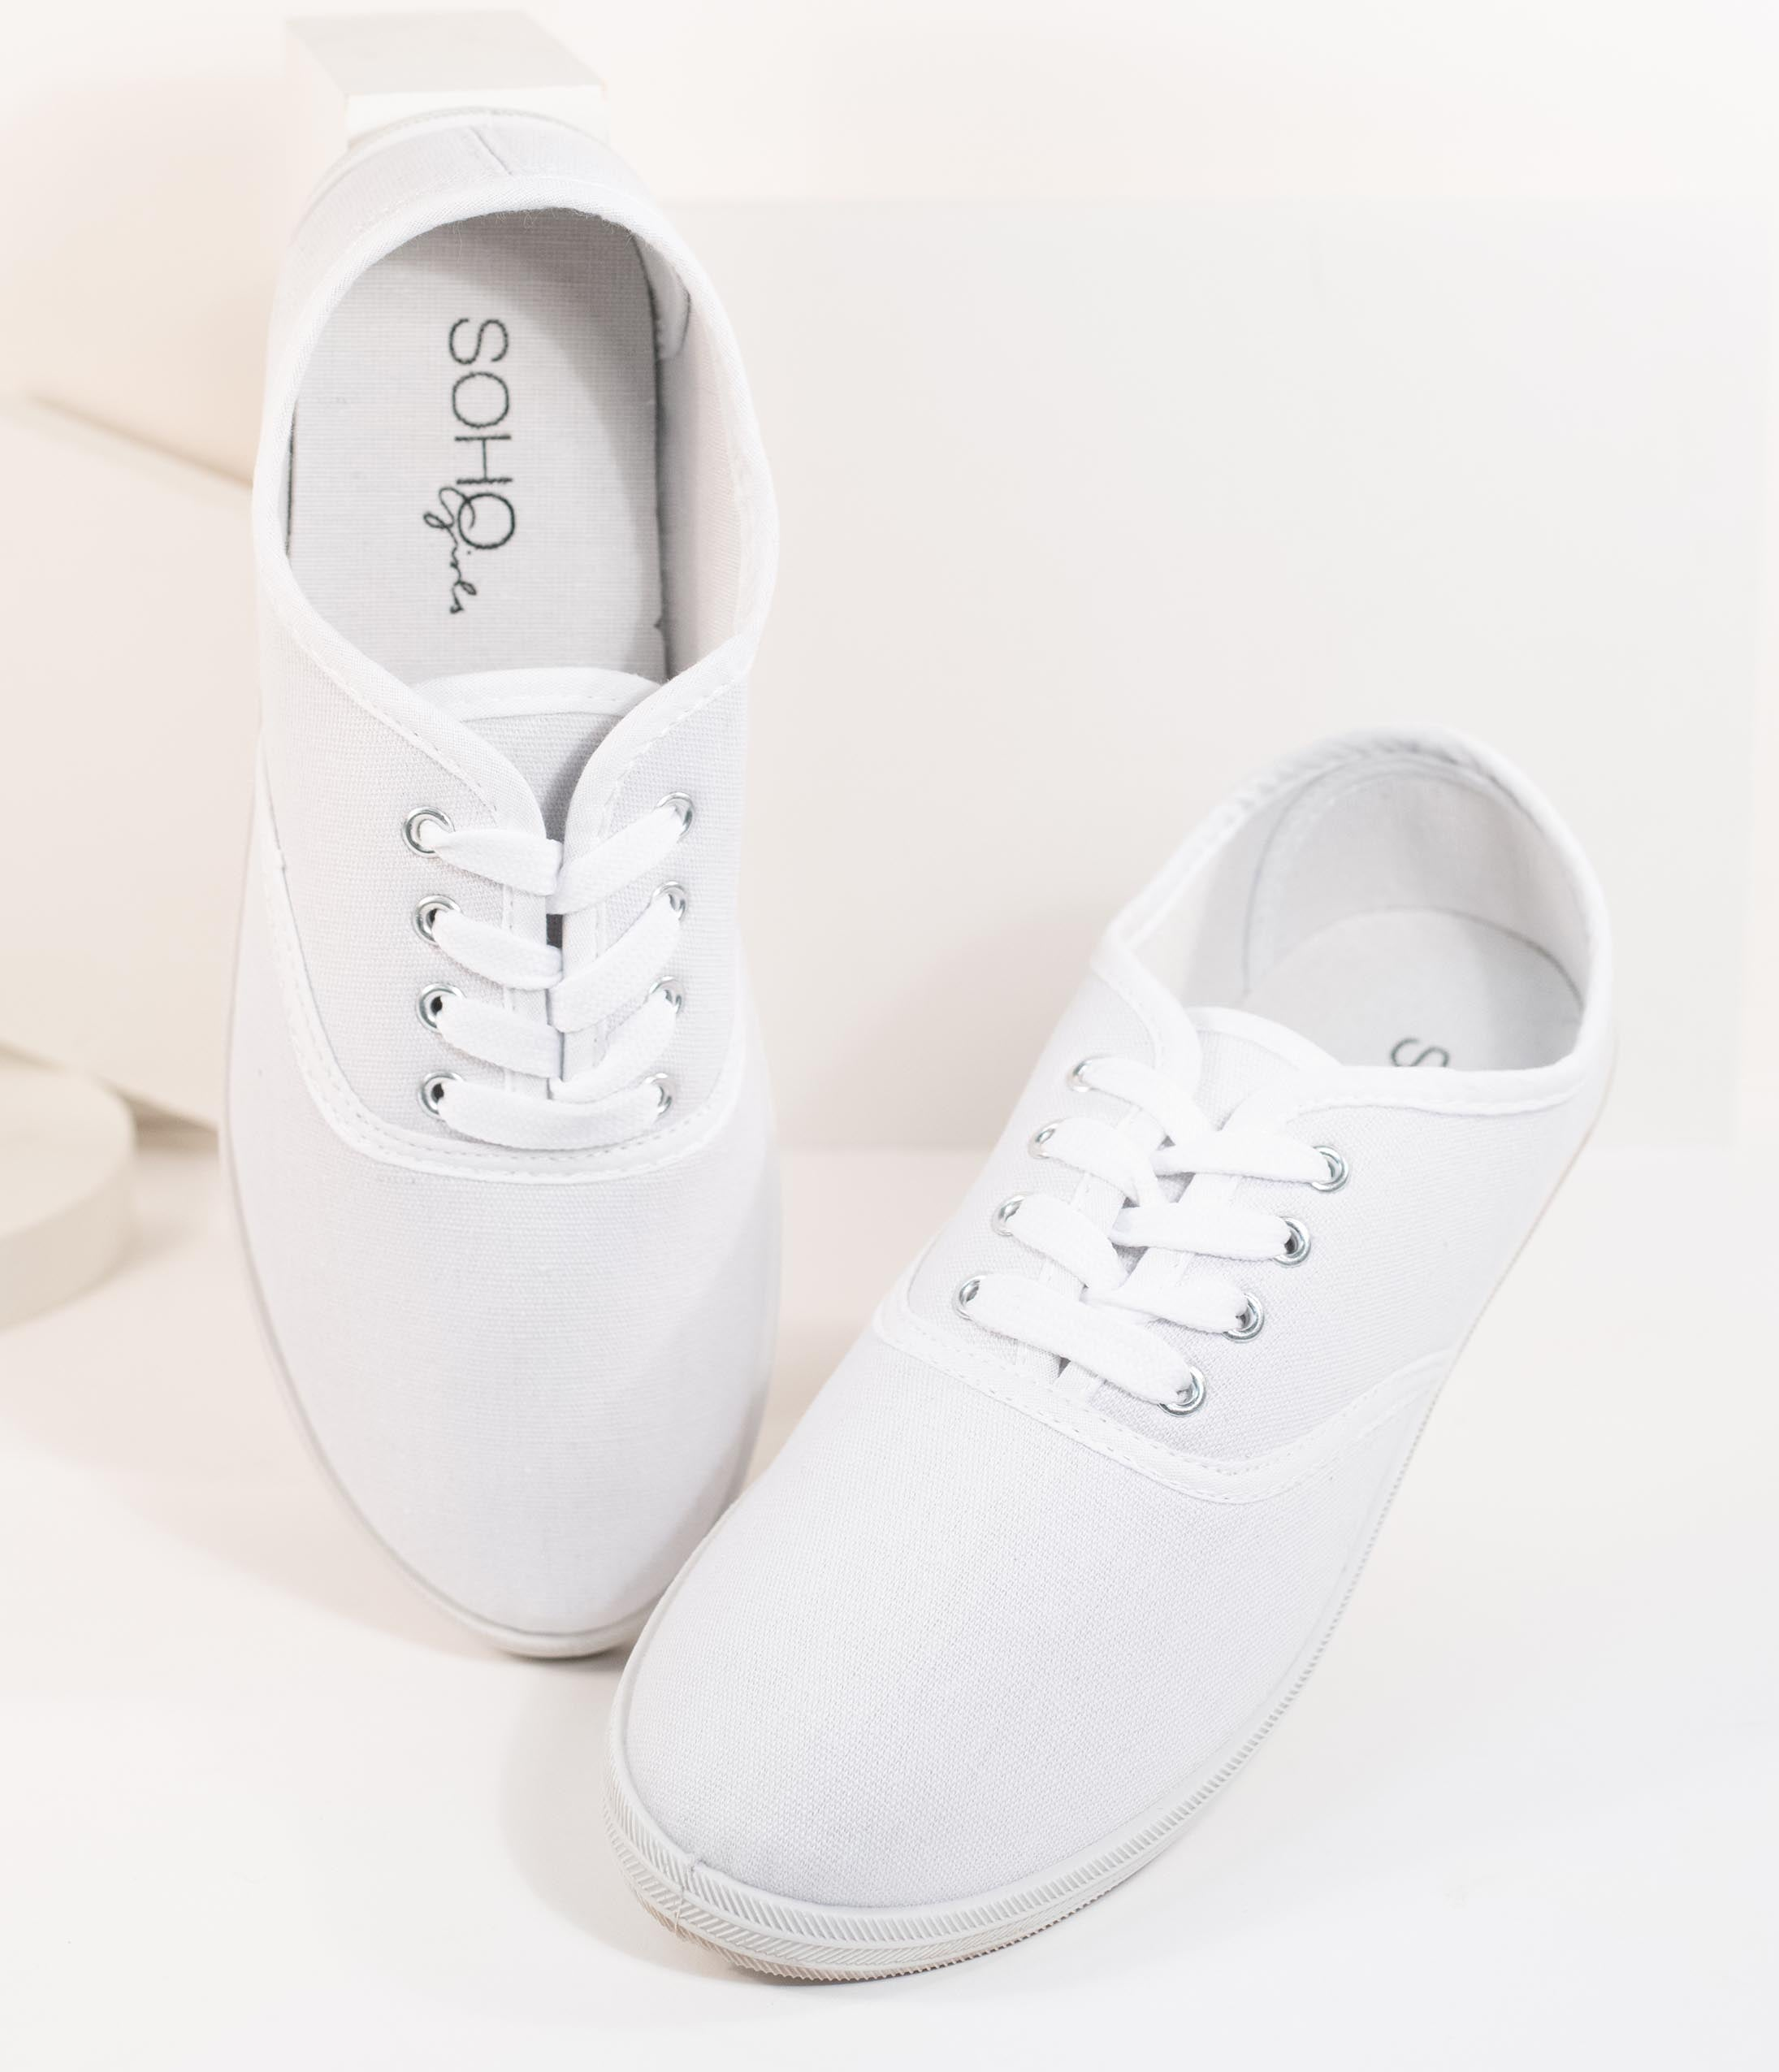 1950s Style Shoes | Heels, Flats, Boots White Canvas Ladies Sneakers $18.00 AT vintagedancer.com